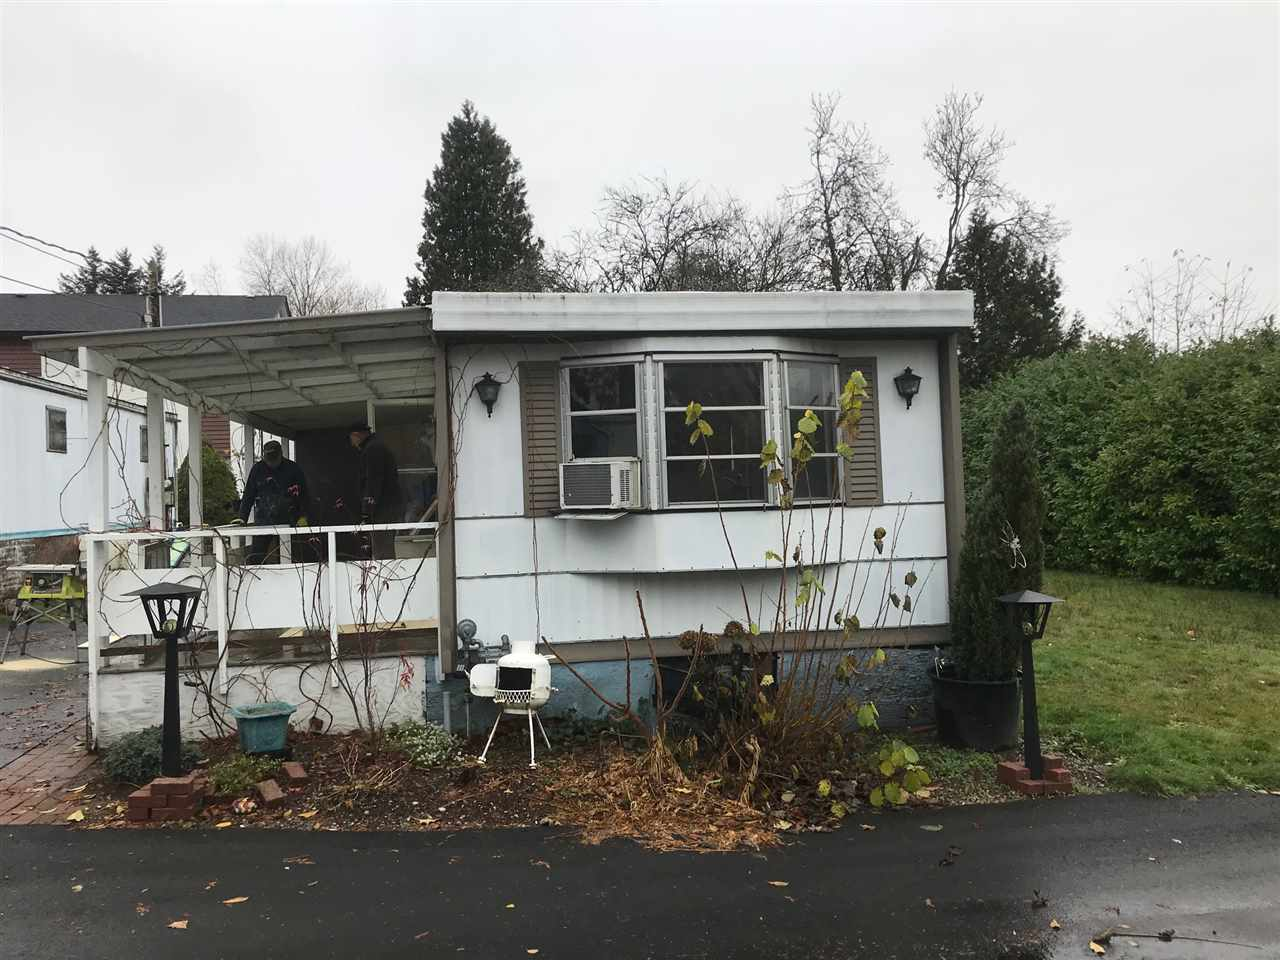 Fleetwood 2 bedroom in family park pet OK Pad rent $550. Fridge, stove, washer, dryer and window coverings all included. Pad located at end of Cul de Sac Great location Bus stop out front of park, Walk to shopping and banking.